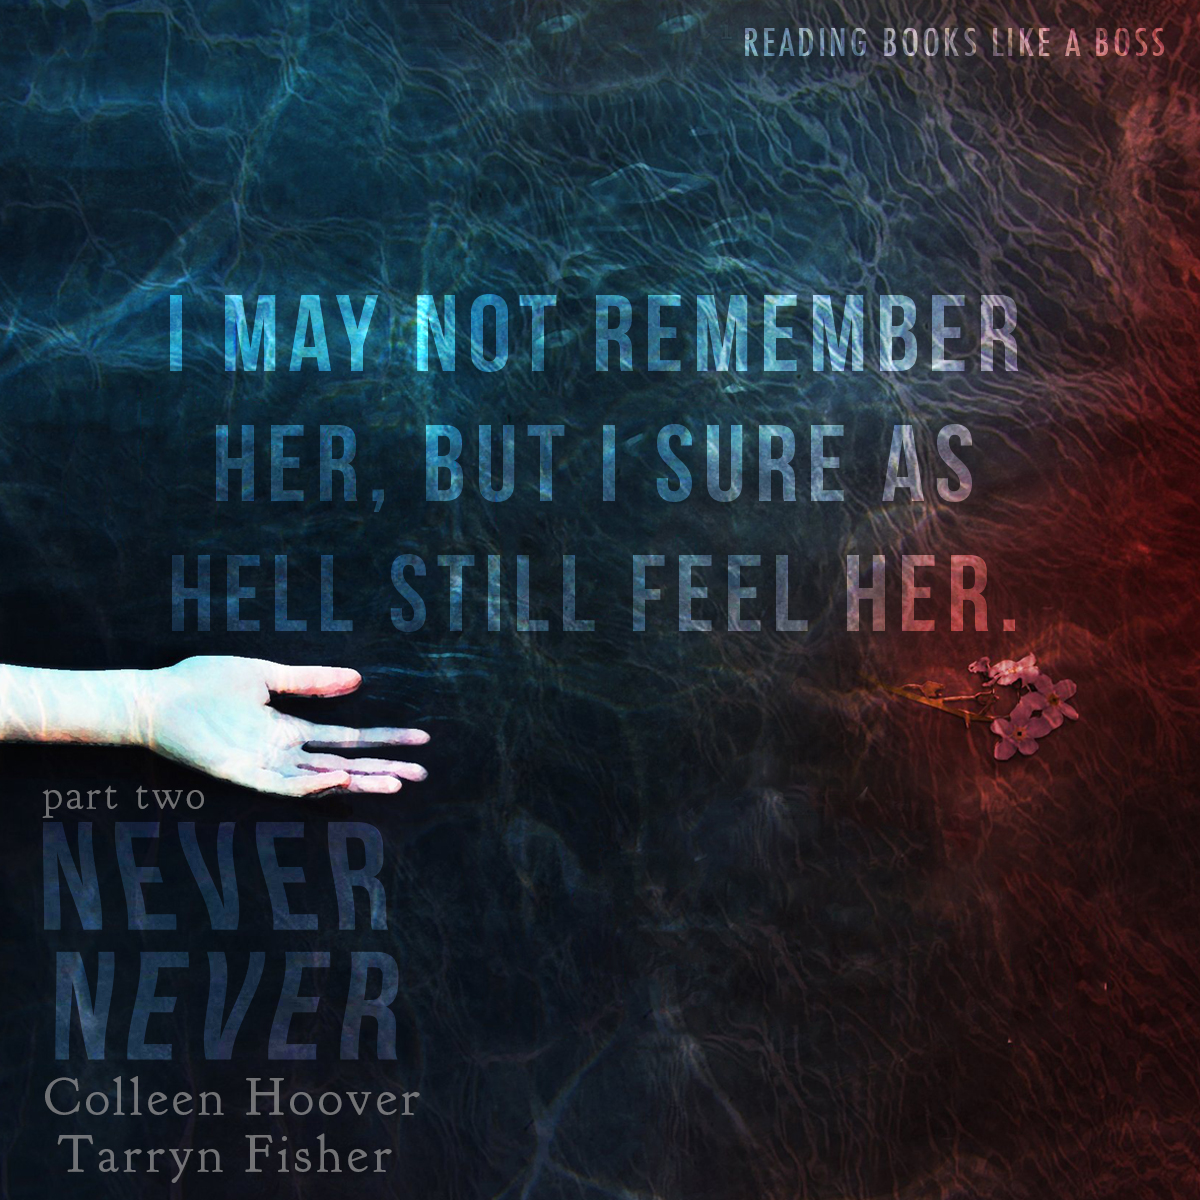 Never Never Part Two by Colleen Hoover and Tarryn Fisher